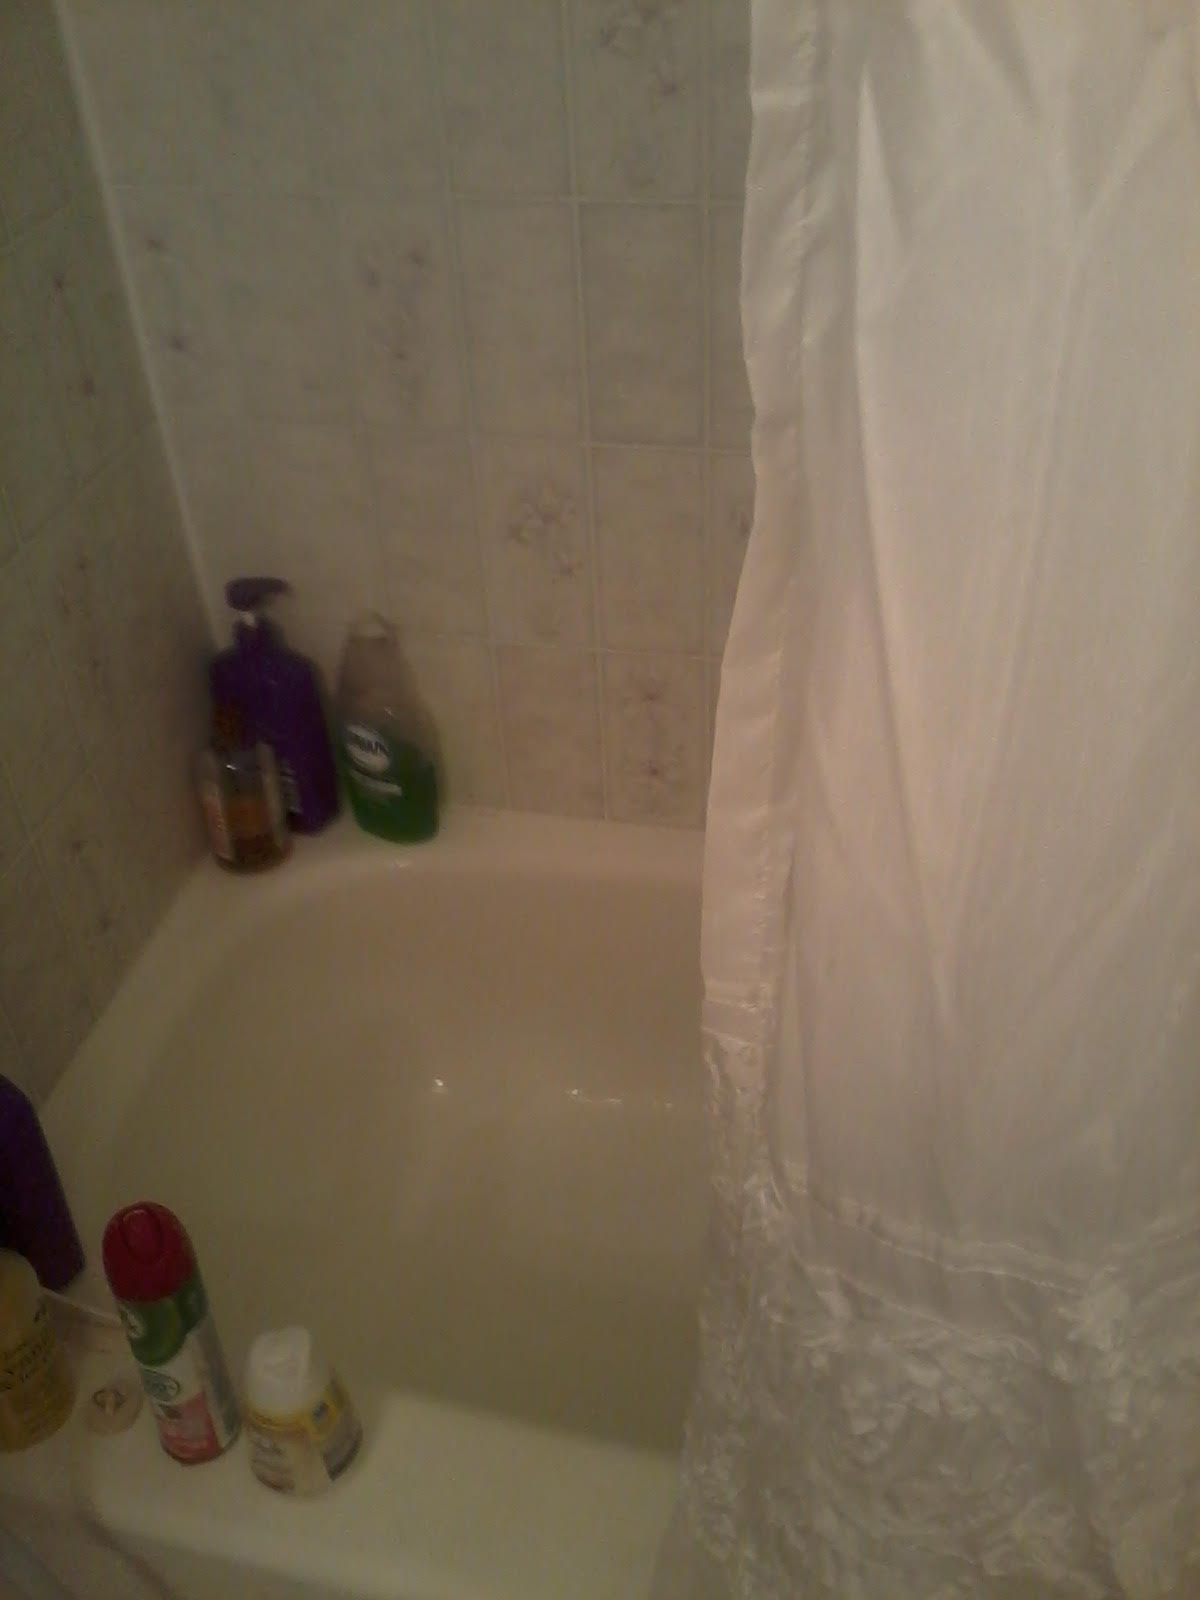 Cleaning Tips! Yay!! #SpringCleaning #Clean Your Shower, Bath Tub ...